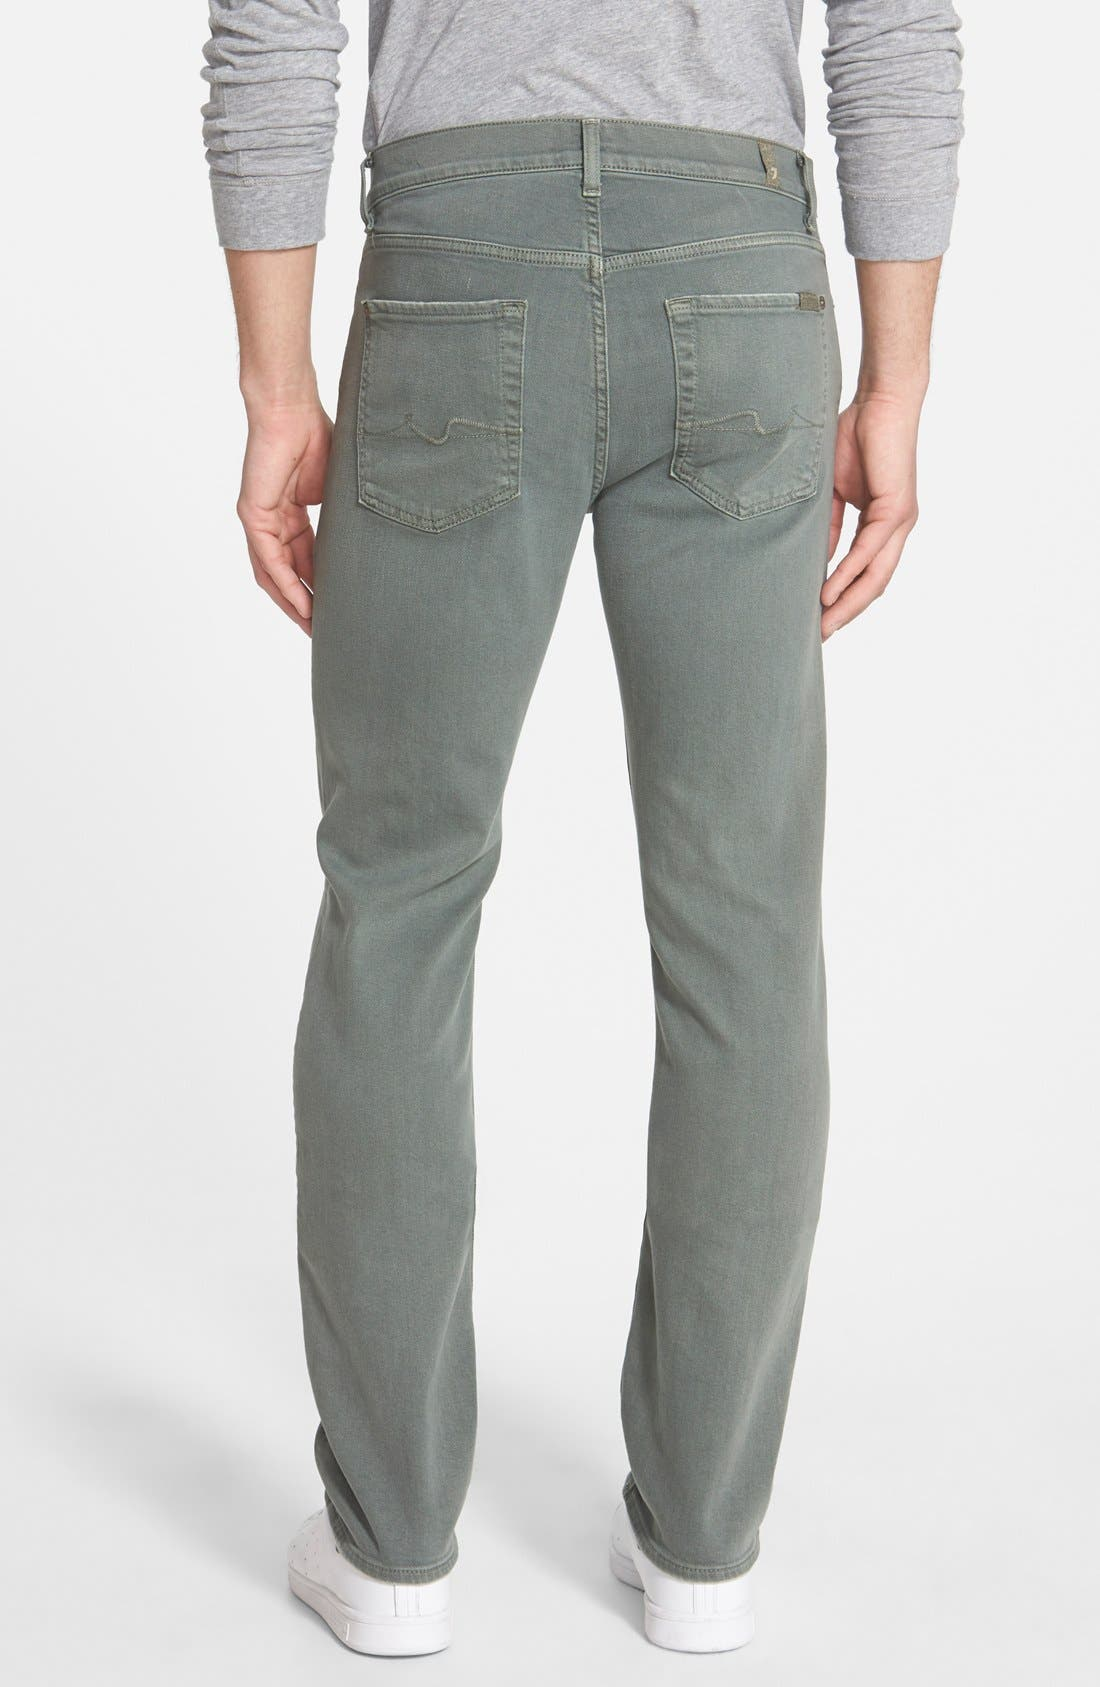 'Slimmy - Luxe Performance' Slim Fit Jeans,                             Alternate thumbnail 29, color,